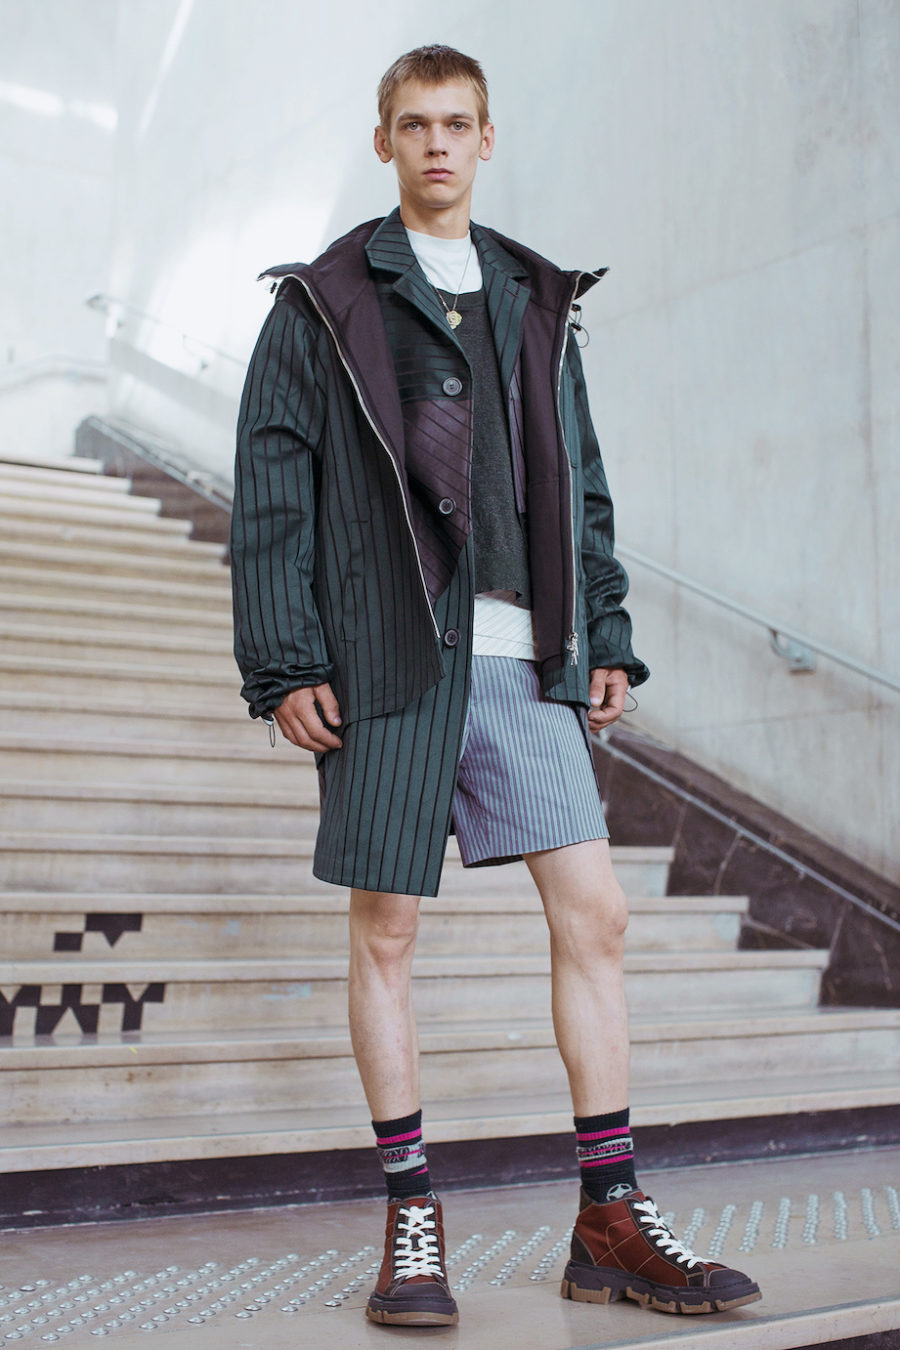 LANVIN_SS19_filepmotwary_DAPPER_DAN_MAGAZINE_112